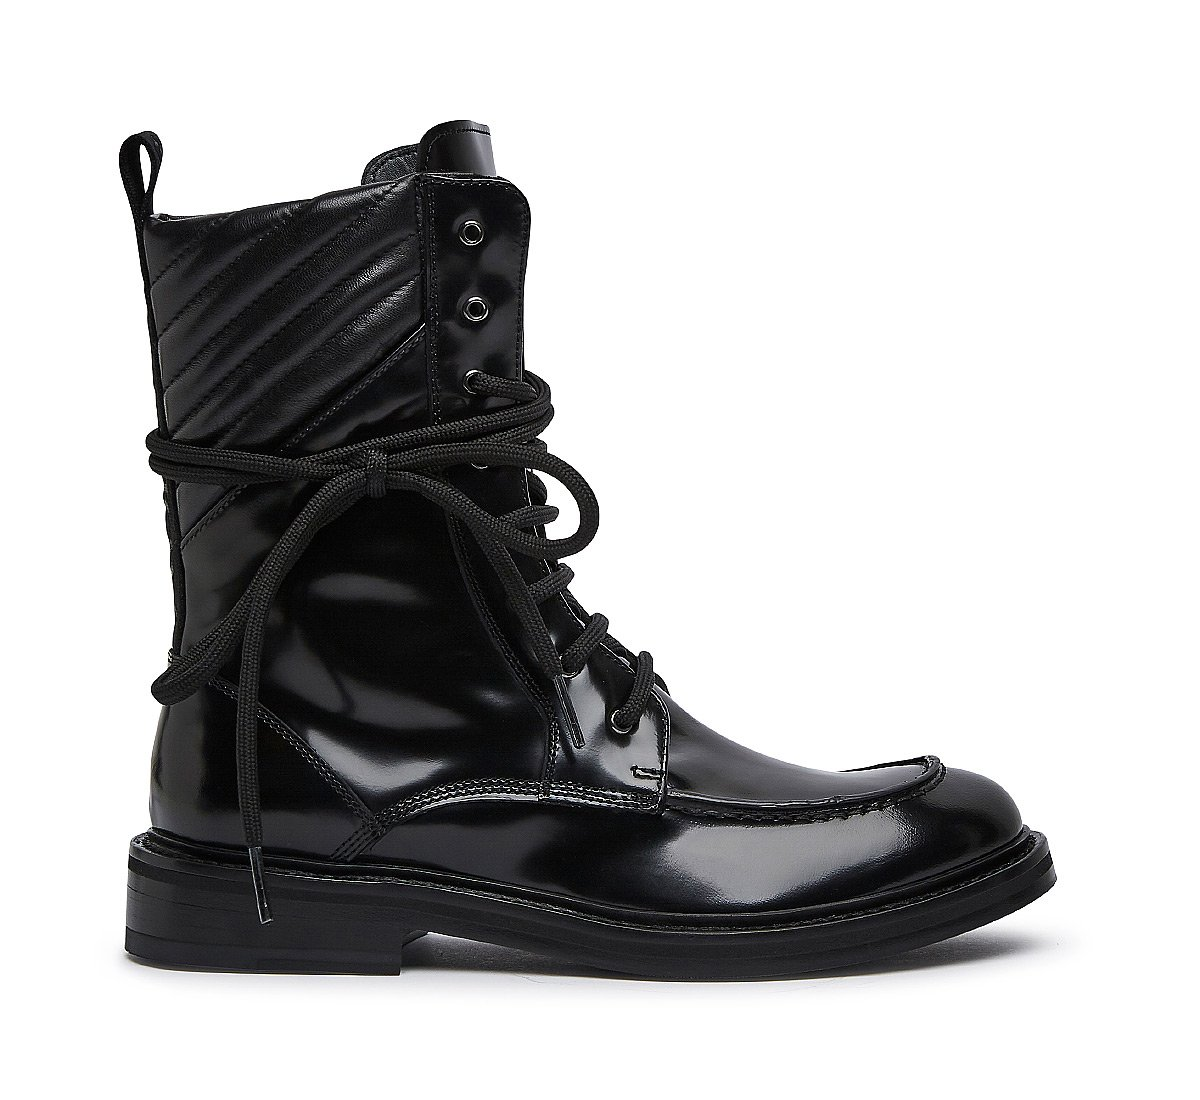 Ankle boots in soft calfskin and nappa leather